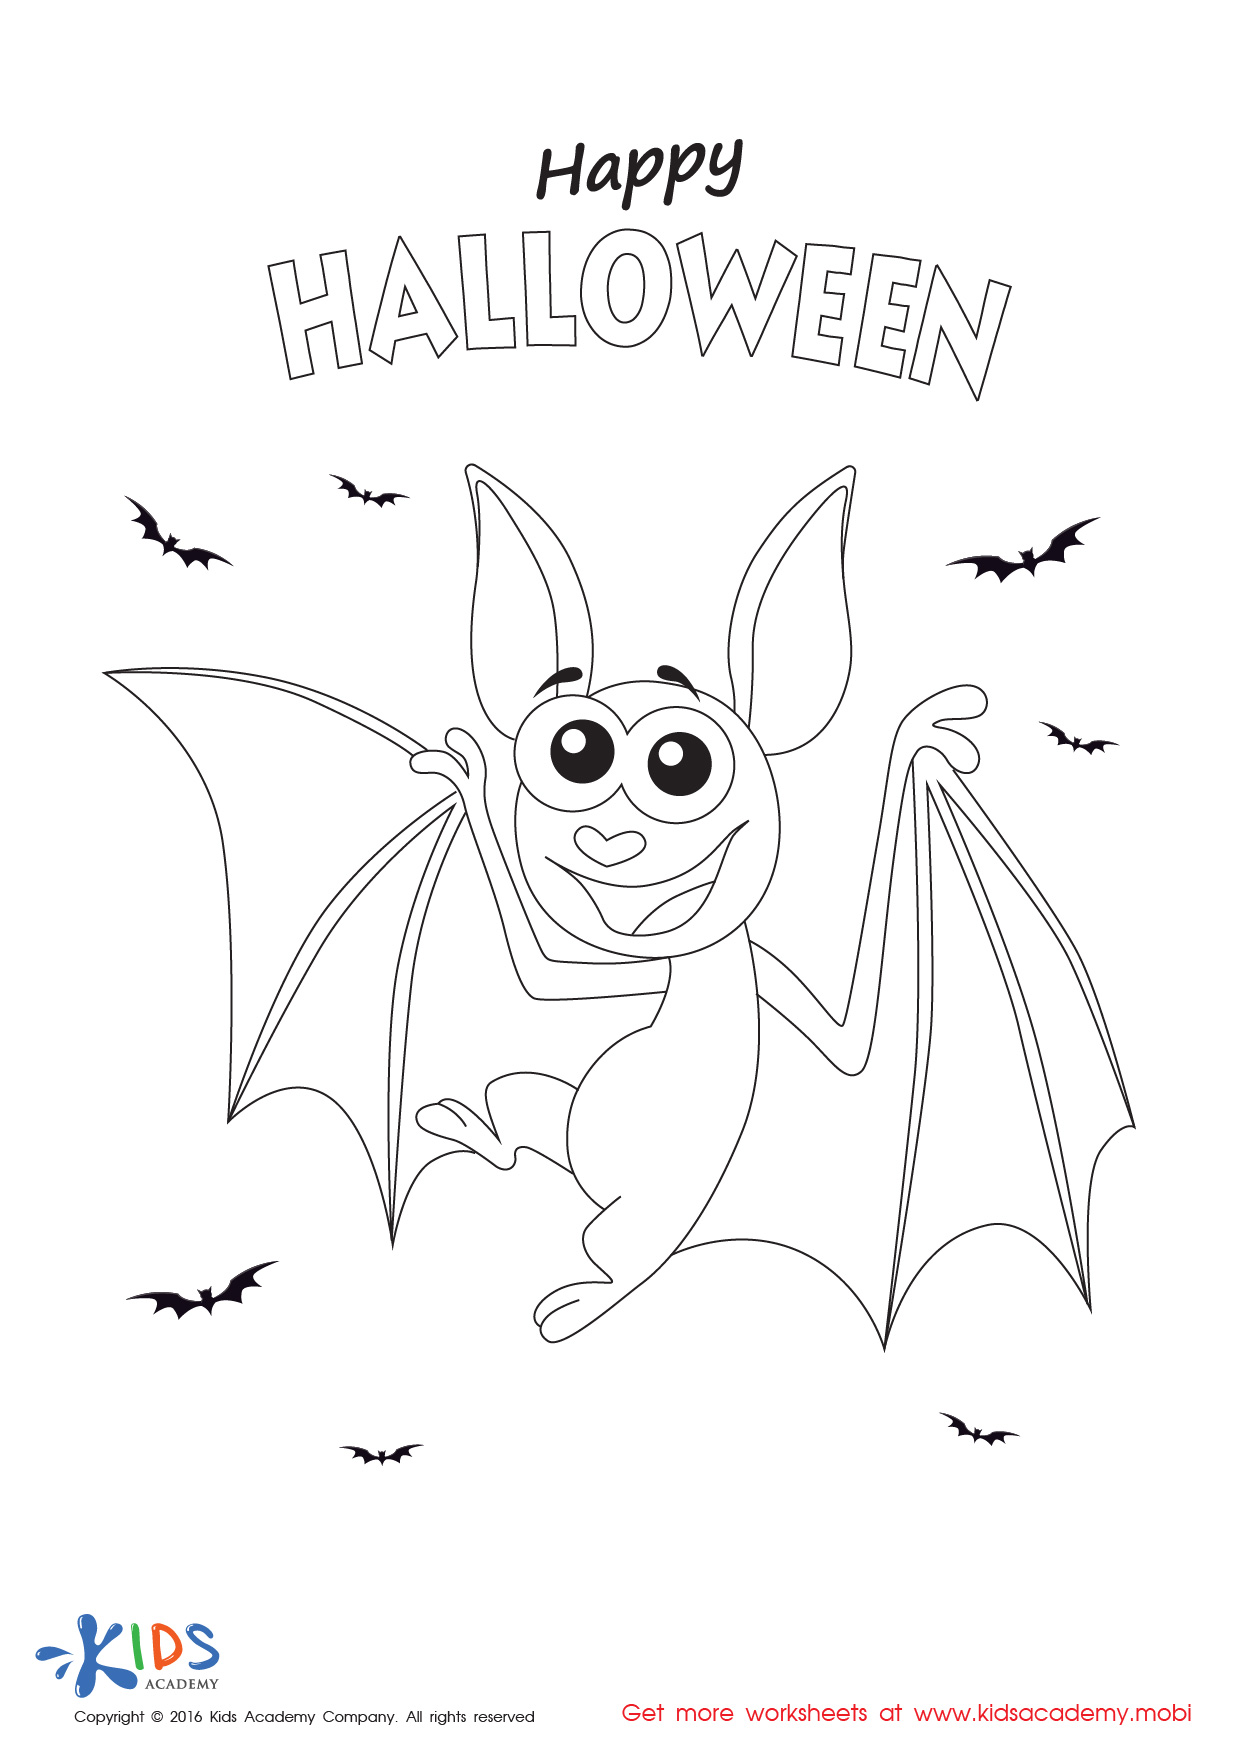 Halloween Coloring Page: A Bat